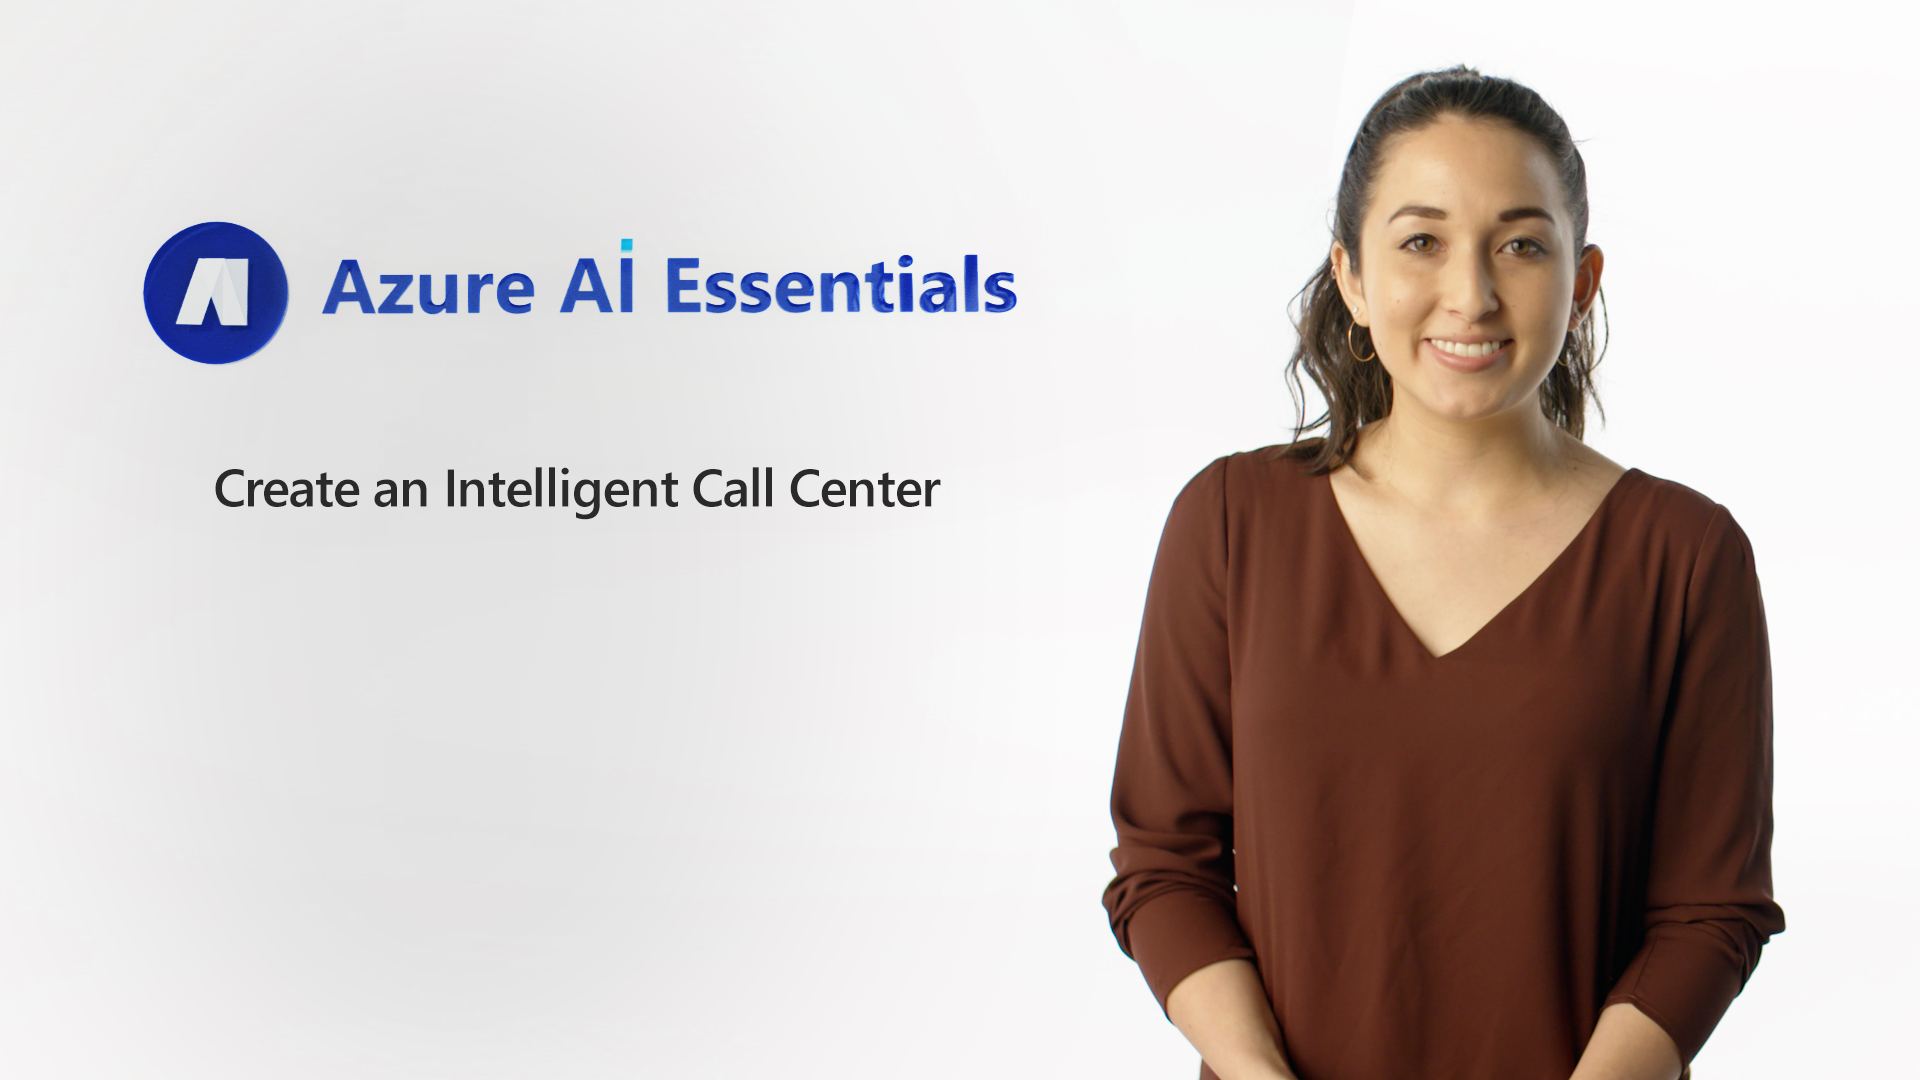 Create an Intelligent Call Center